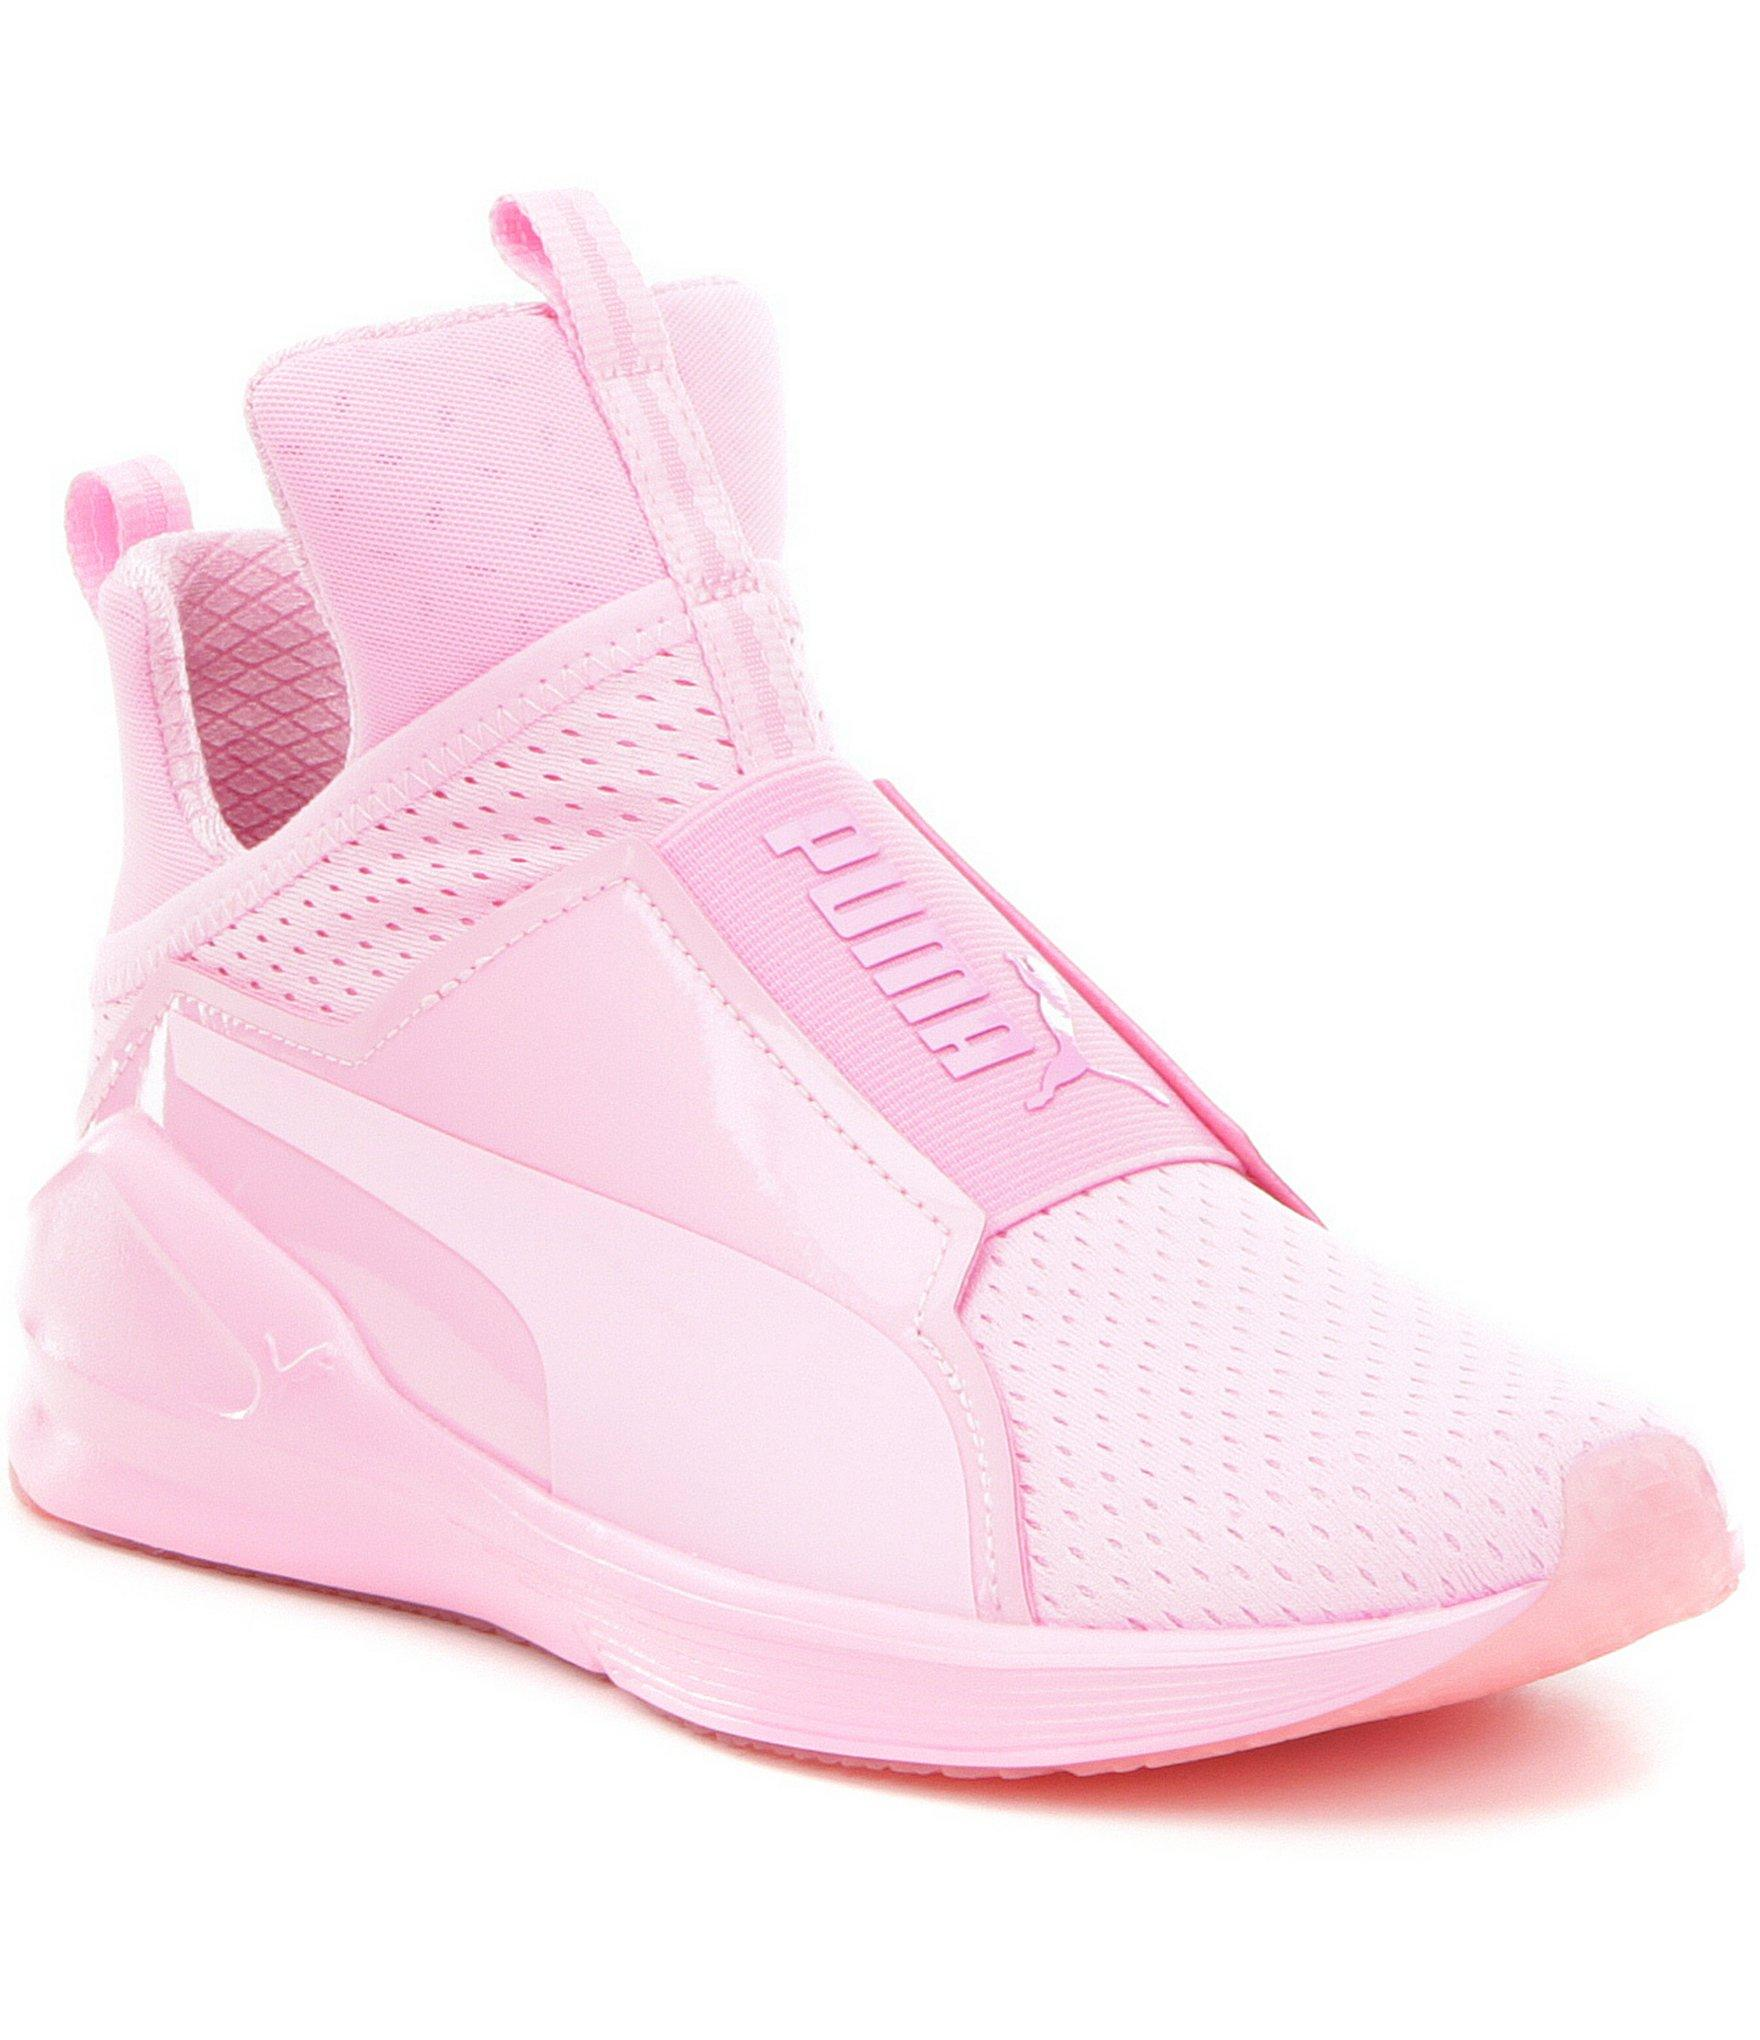 09ff59bad1 ... where to buy lyst puma fierce bright mesh sneakers in pink puma light  pink shoes 5e3a2